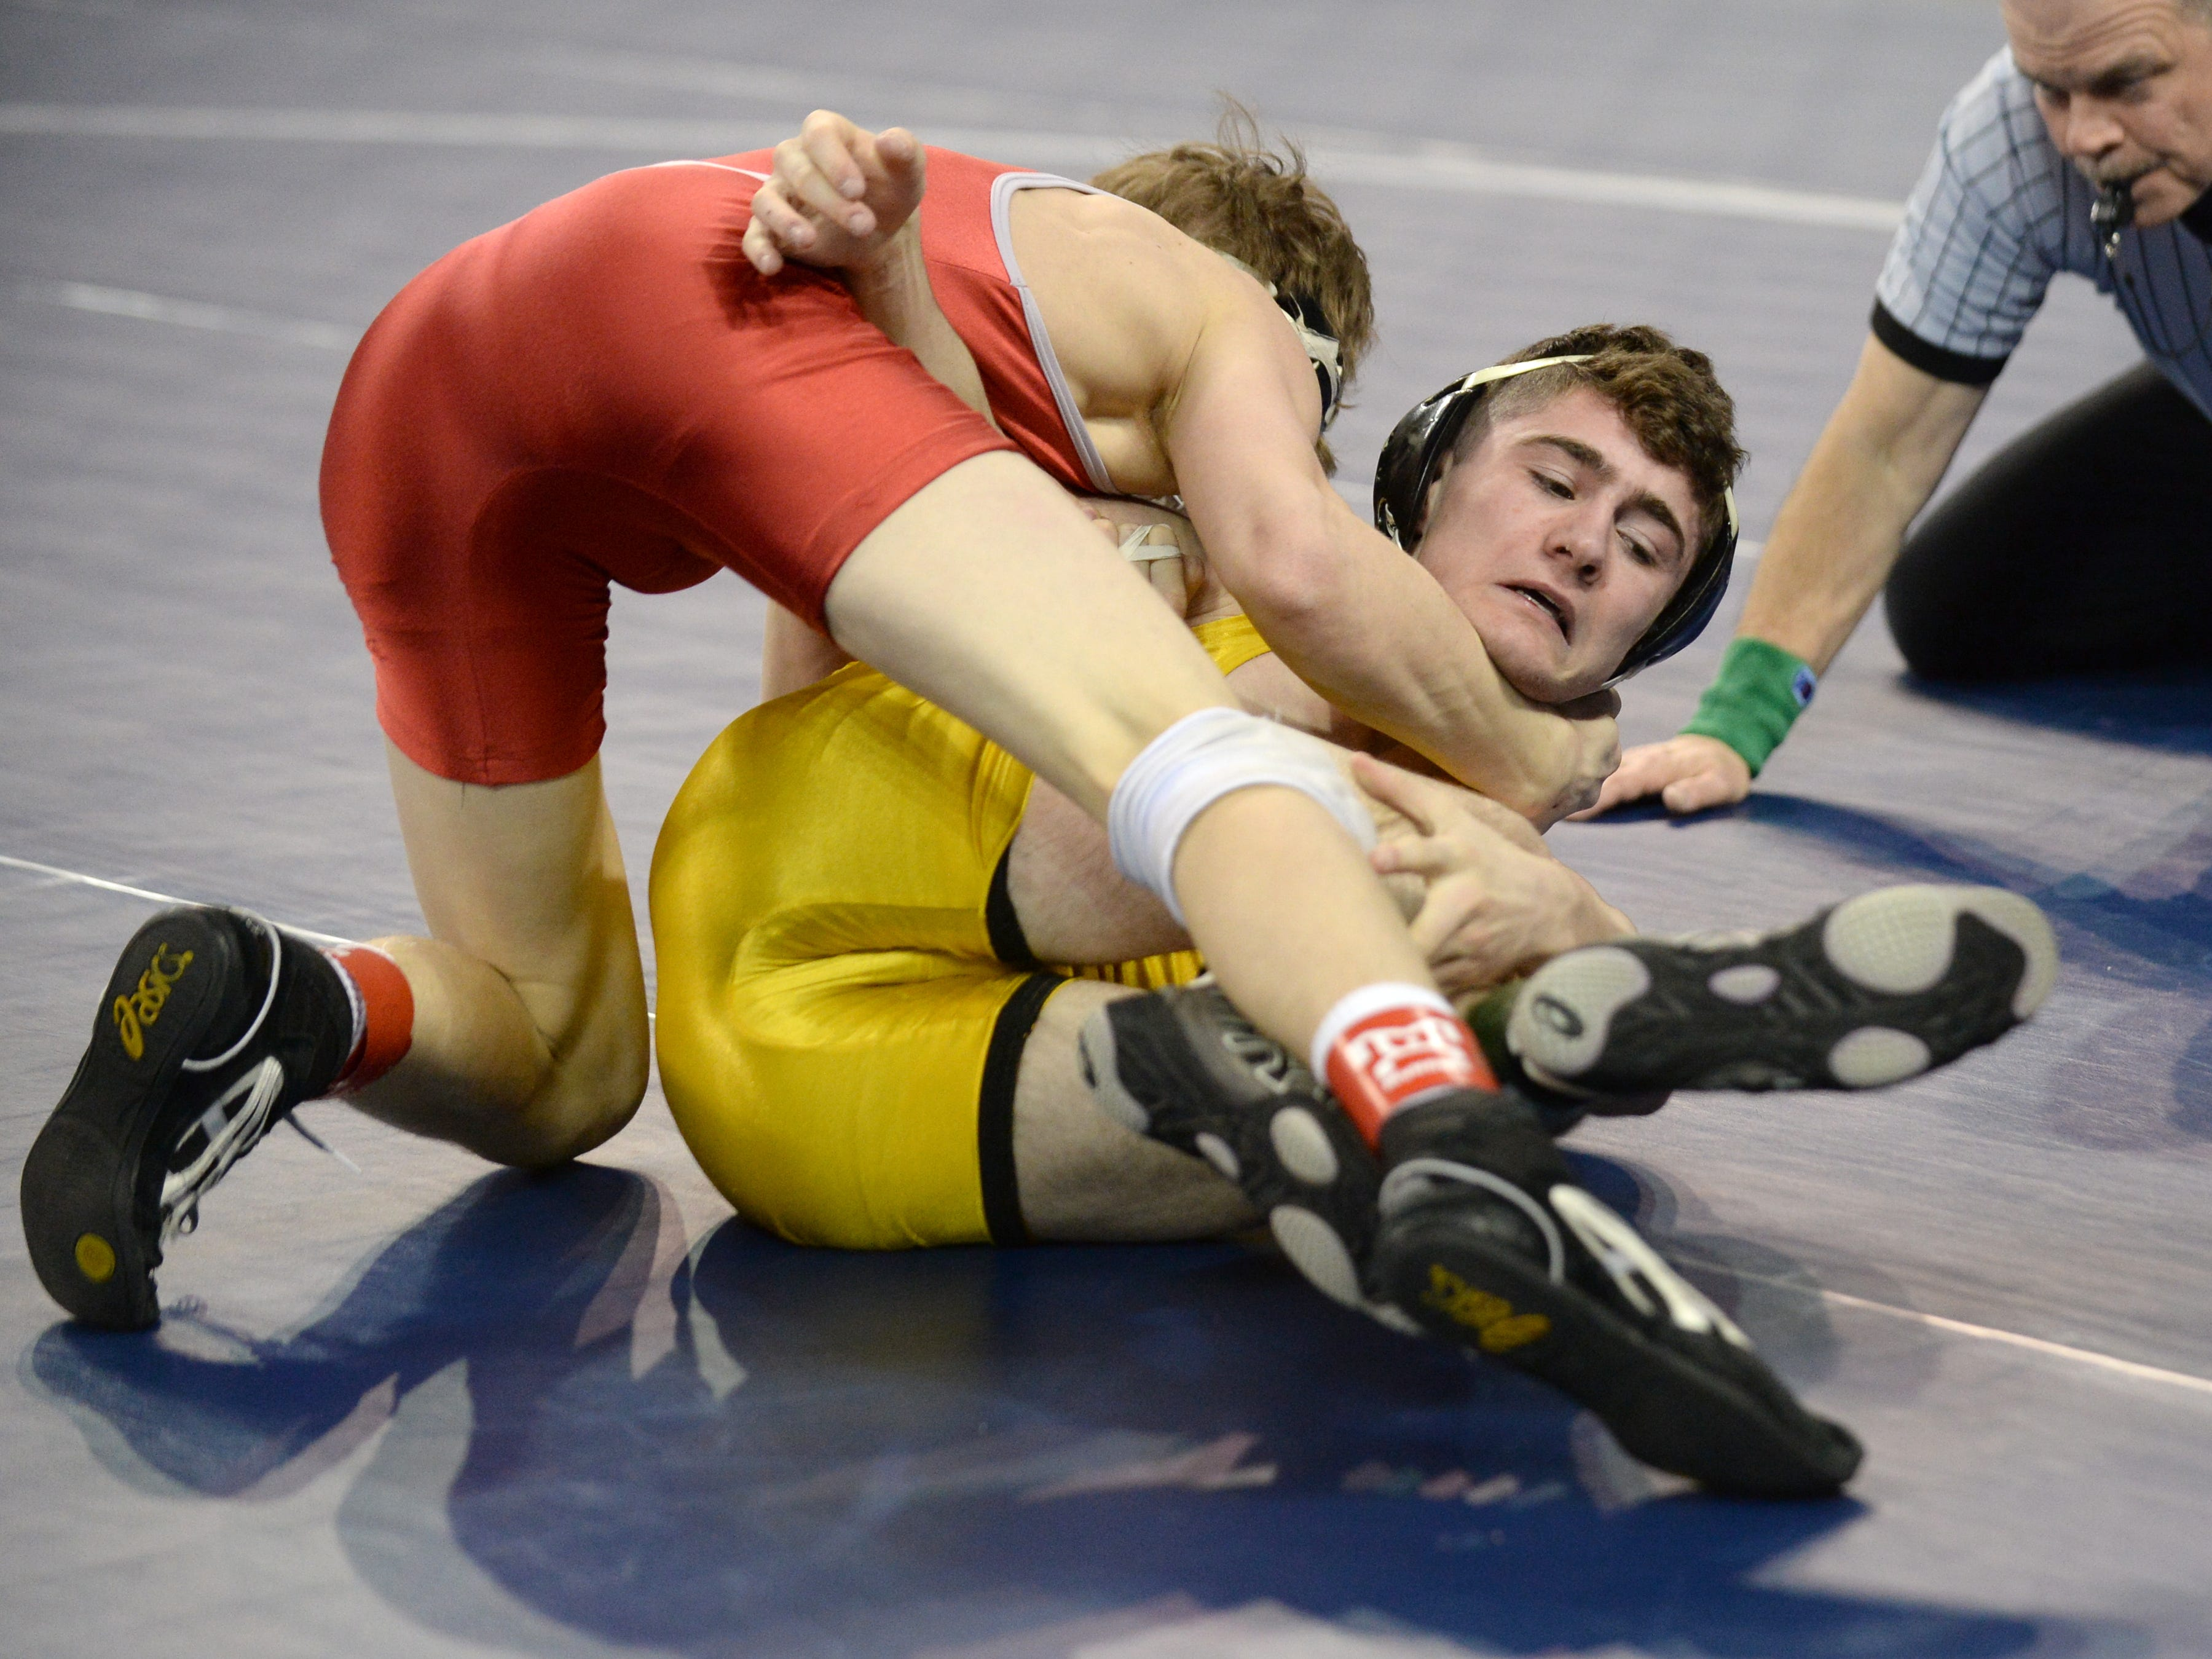 North Hunterdon's Connor Robinson attempts to get away from a pin High Point's Devin Flannery in a 120-pound first round bout during the NJSIAA Individual Wrestling Championships at Boardwalk Hall in Atlantic City, Thursday, Feb. 28, 2019.